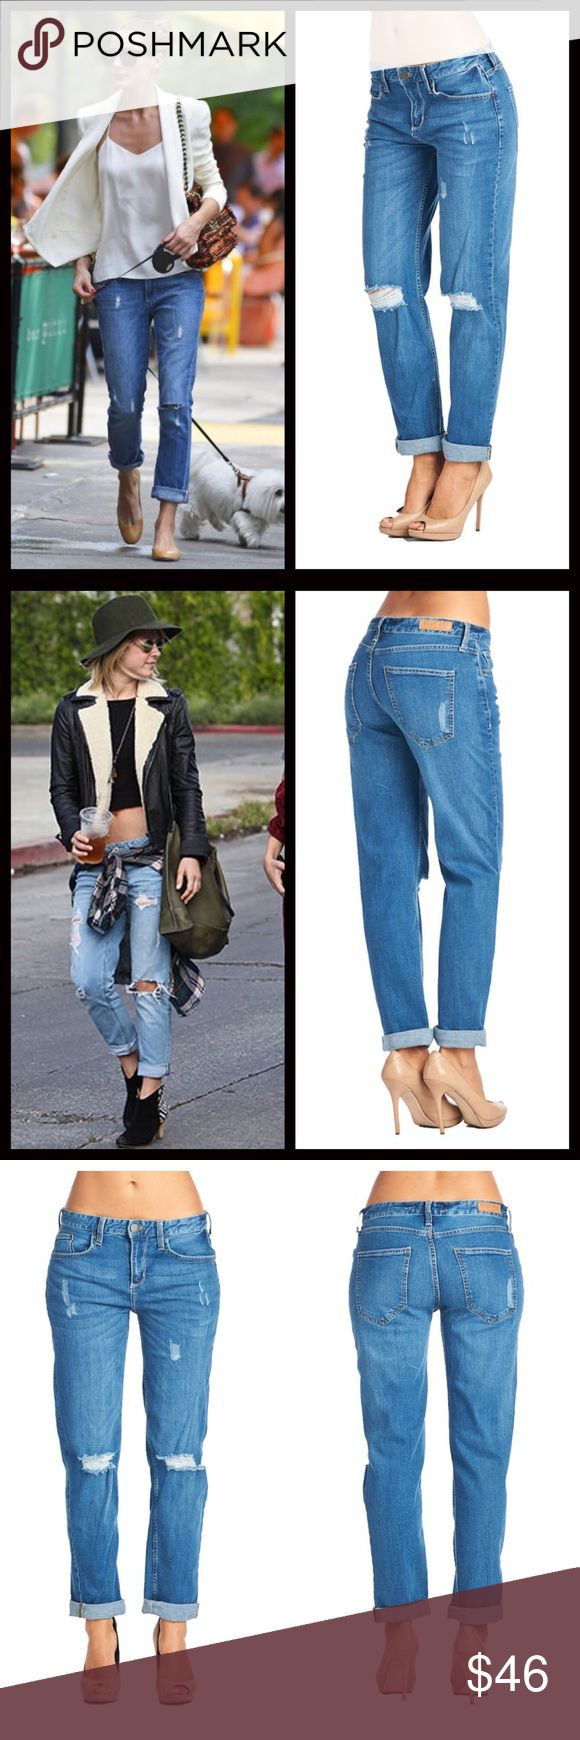 """Destroyed Boyfriend Jeans🆕 These loose and comfy boyfriend style jeans are a celebrity favorite. So cute & comfy and perfect to lounge in or dress up. Had to keep a pair for myself. The ever popular destructive cut. Measurements given upon request. Run true to size. Meant to be rolled but can leave straight leg as well. With the straight leg the inseam is 30"""". Bundle and save 10%. Jeans Boyfriend"""